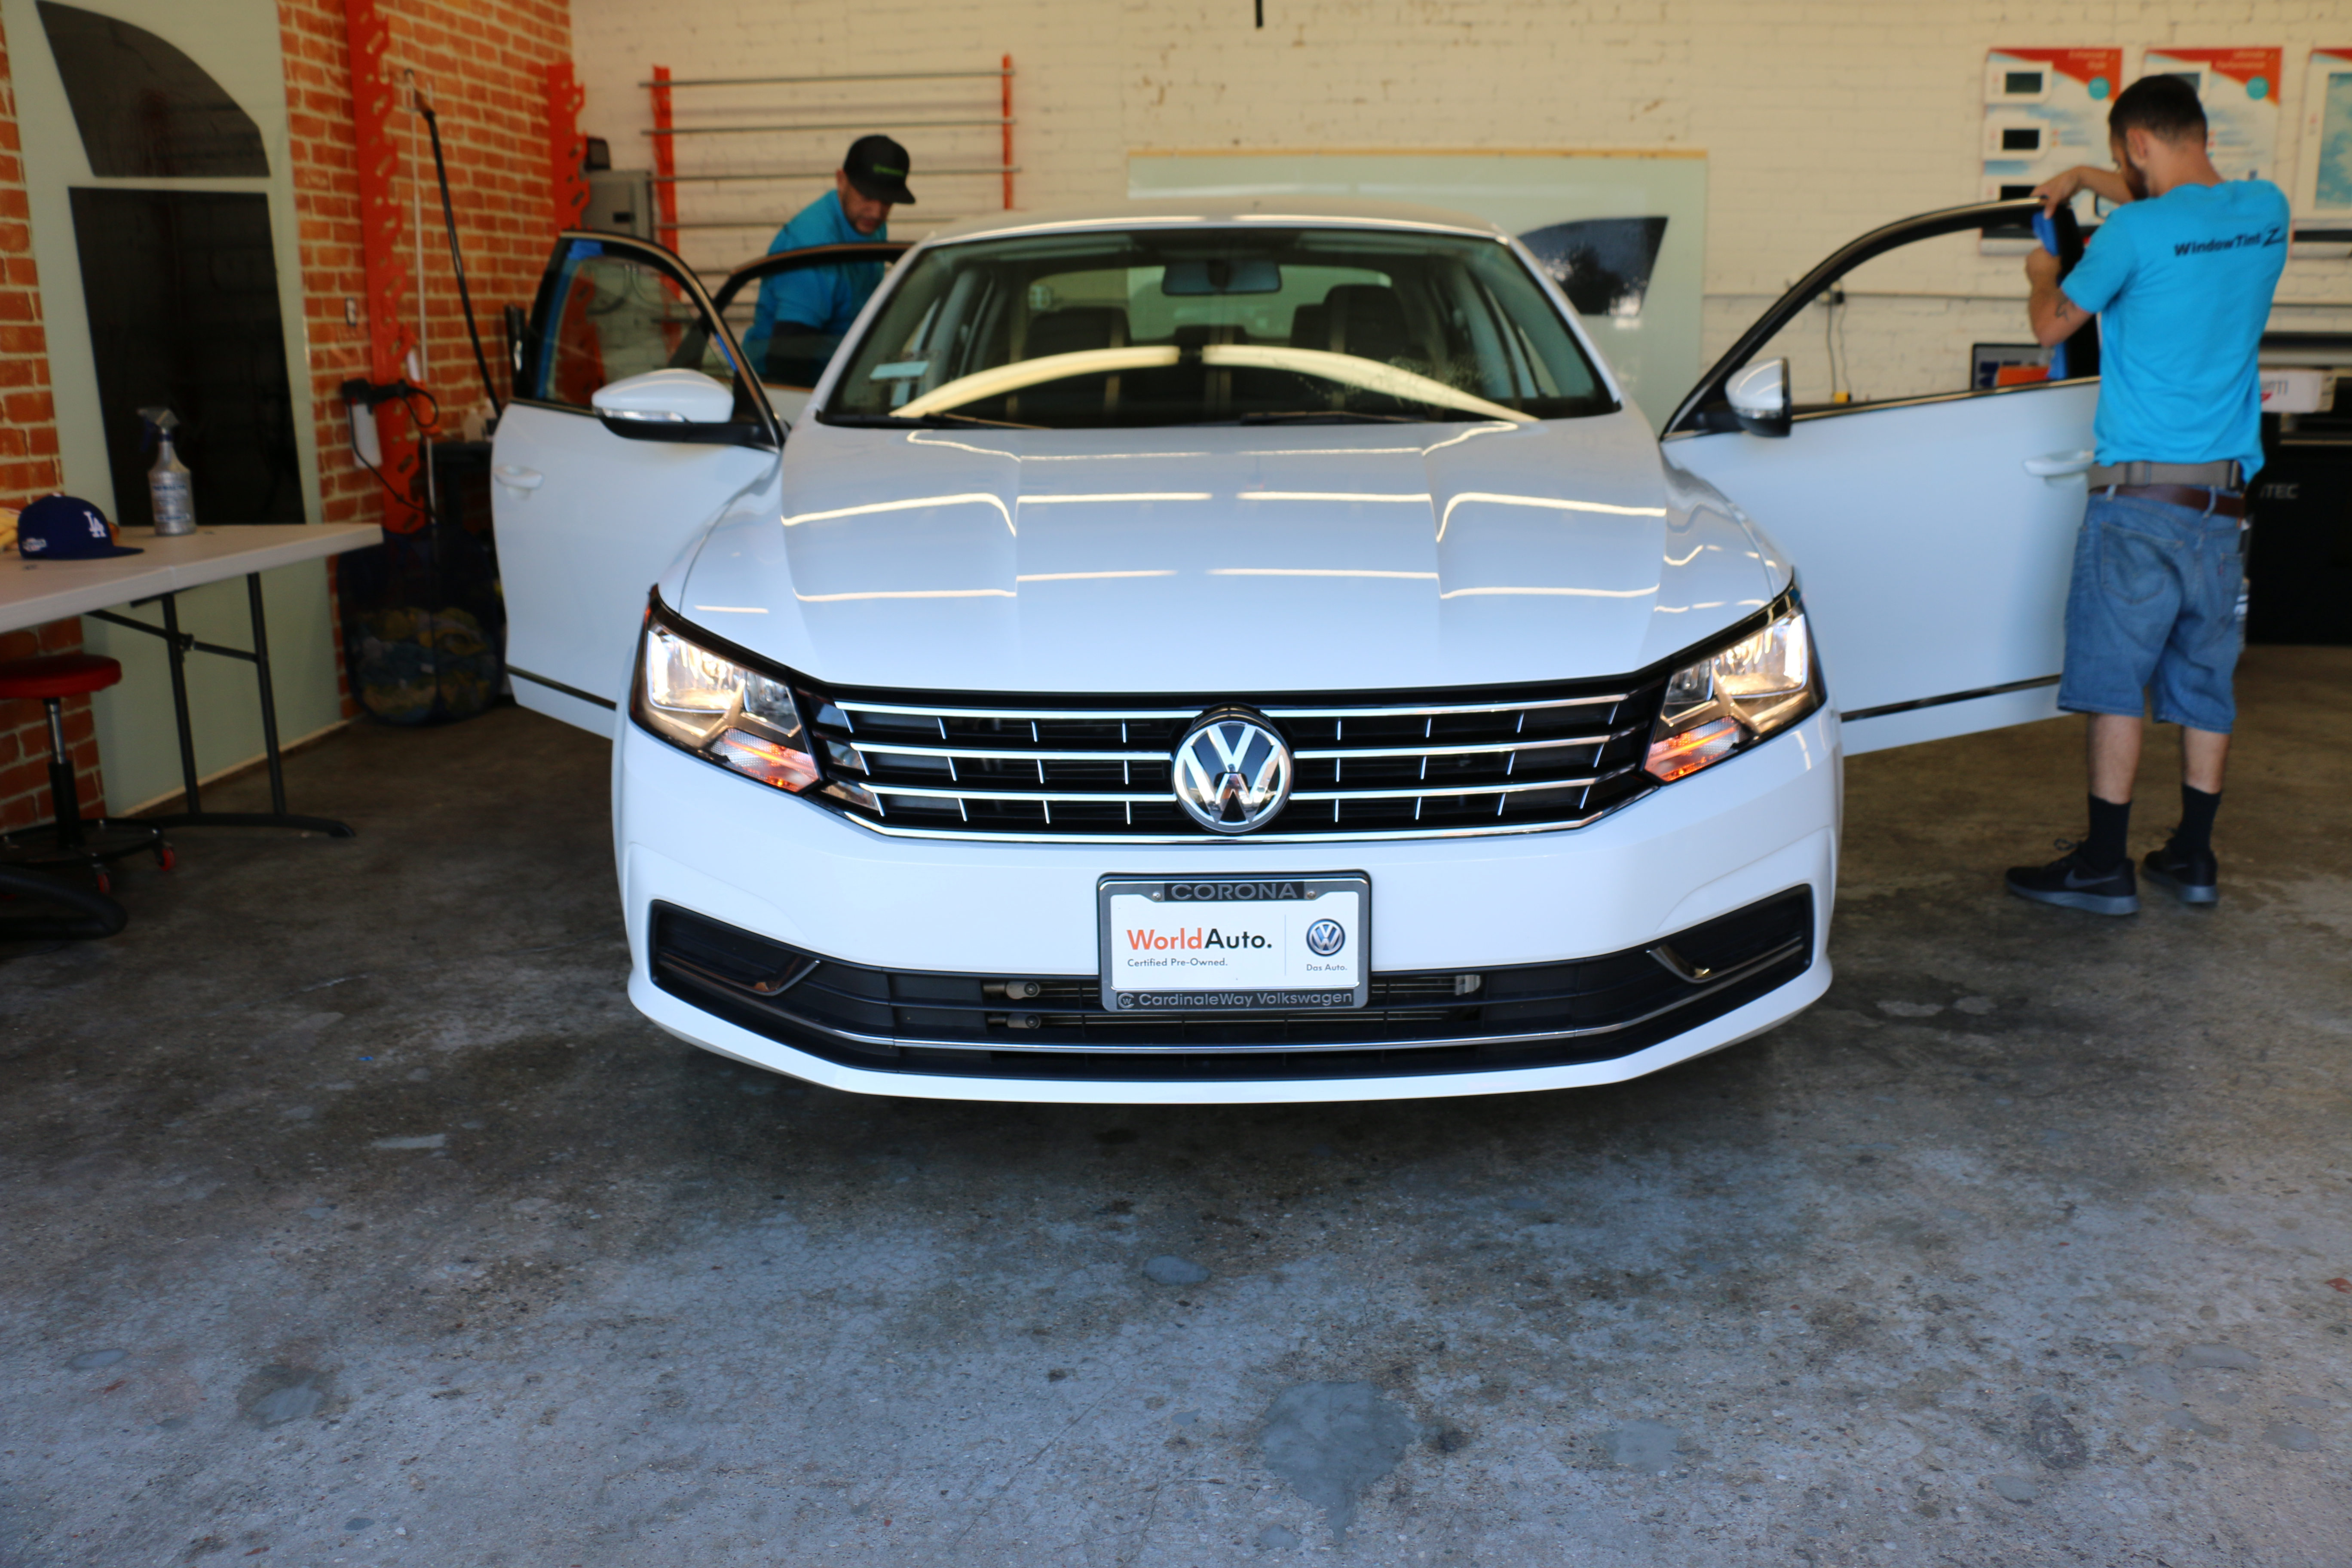 Window Tint For Volkswagen Passat Window Tint Z